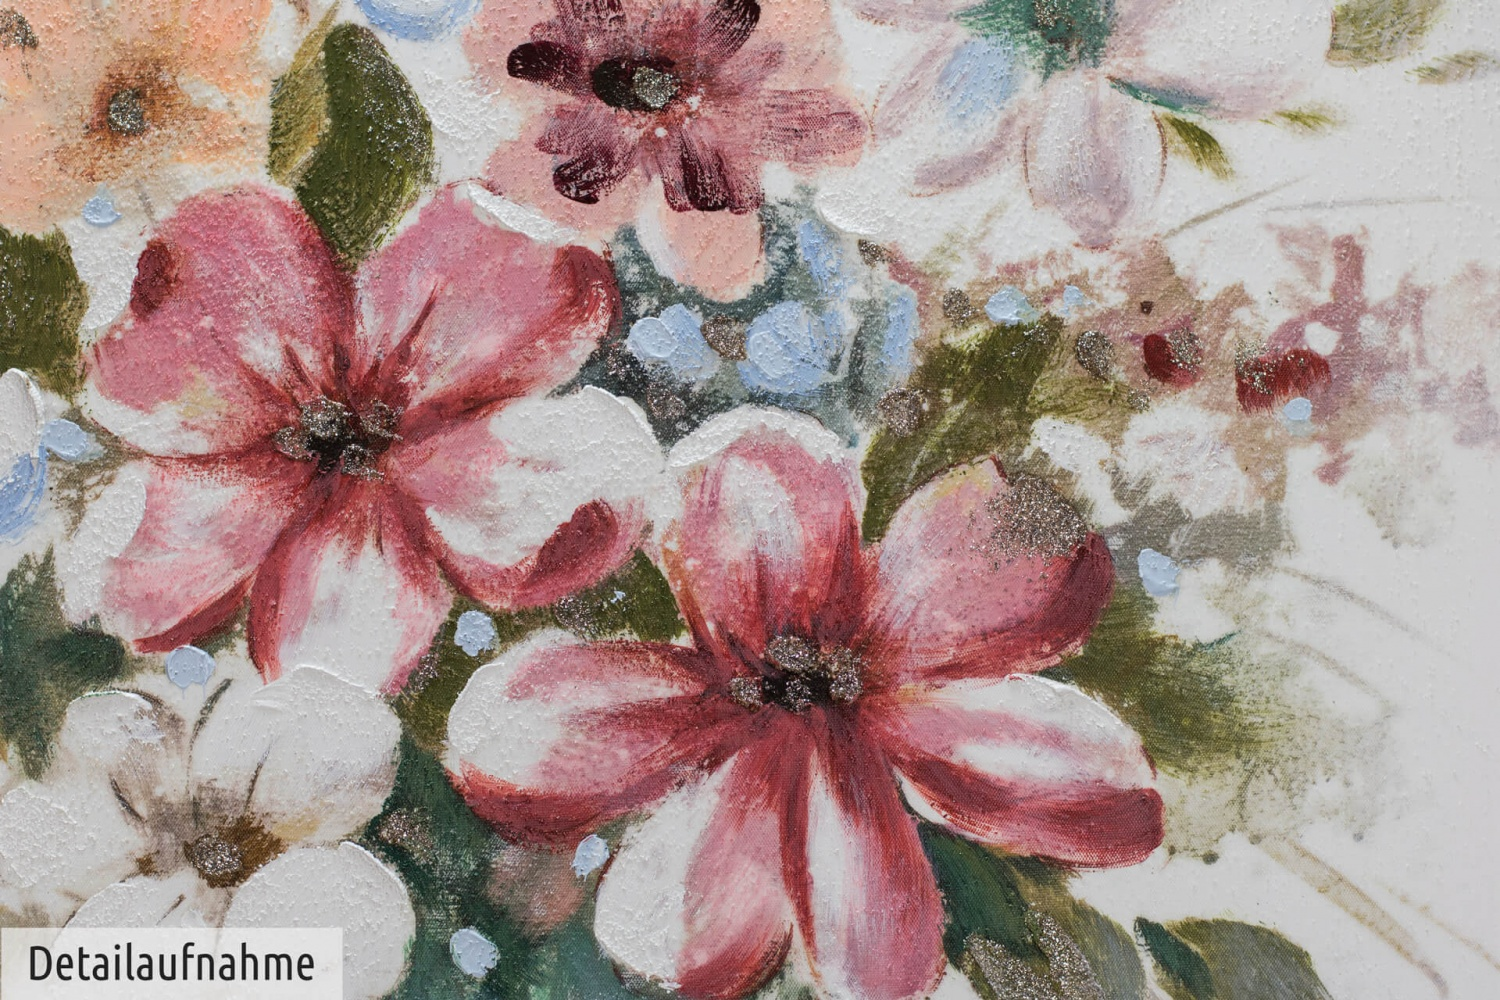 acryl gem lde 39 blumen rosa natur 39 handgemalt leinwand bilder 80x80cm ebay. Black Bedroom Furniture Sets. Home Design Ideas